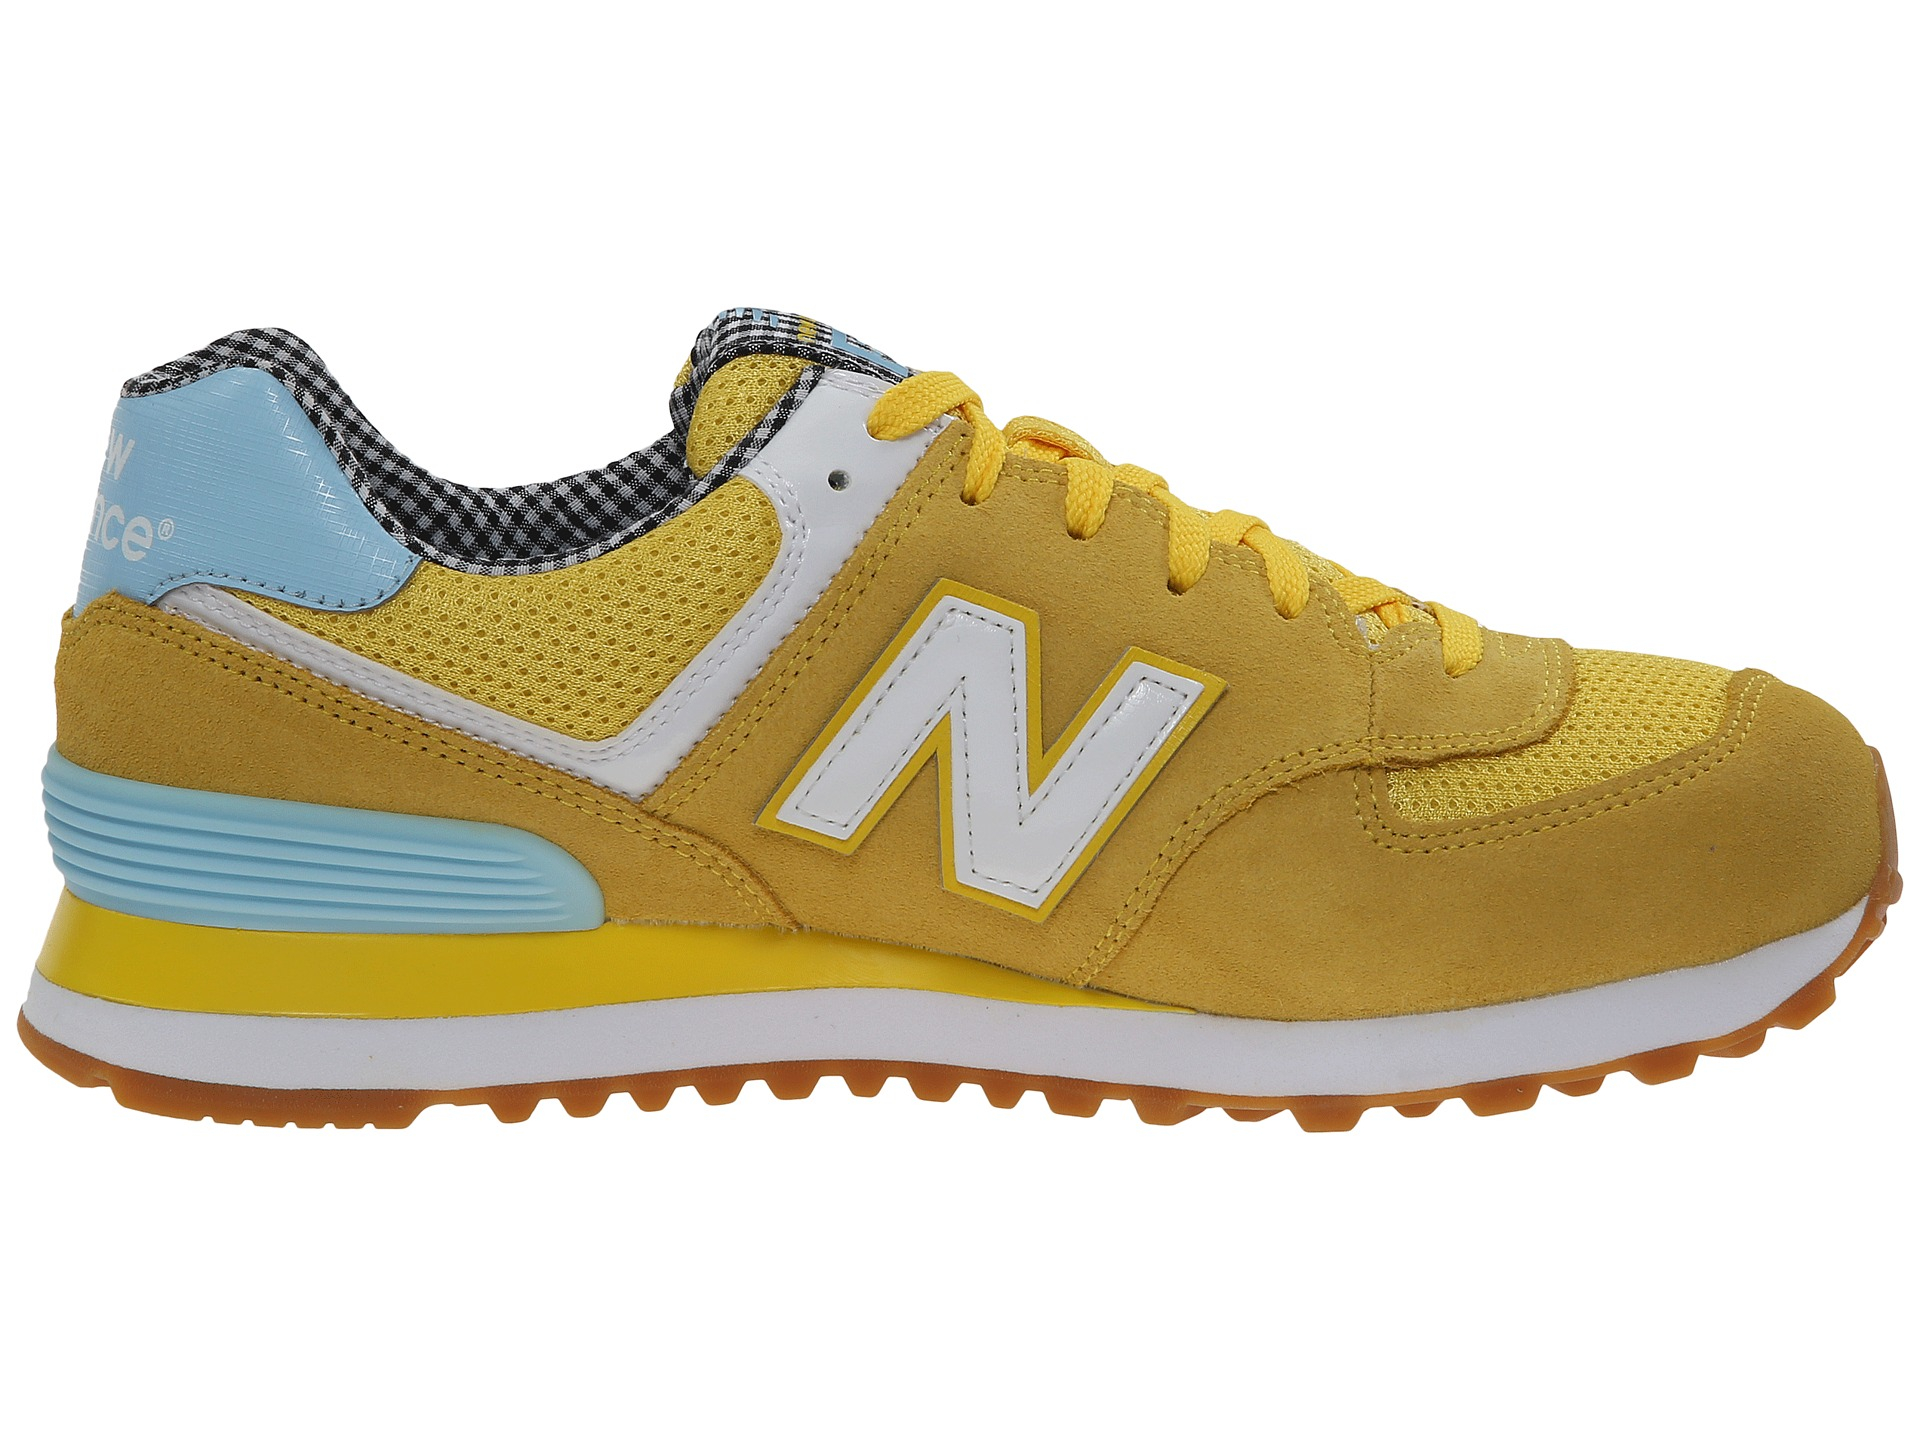 new balance wl574 picnic collection in yellow yellow white suede mesh lyst. Black Bedroom Furniture Sets. Home Design Ideas